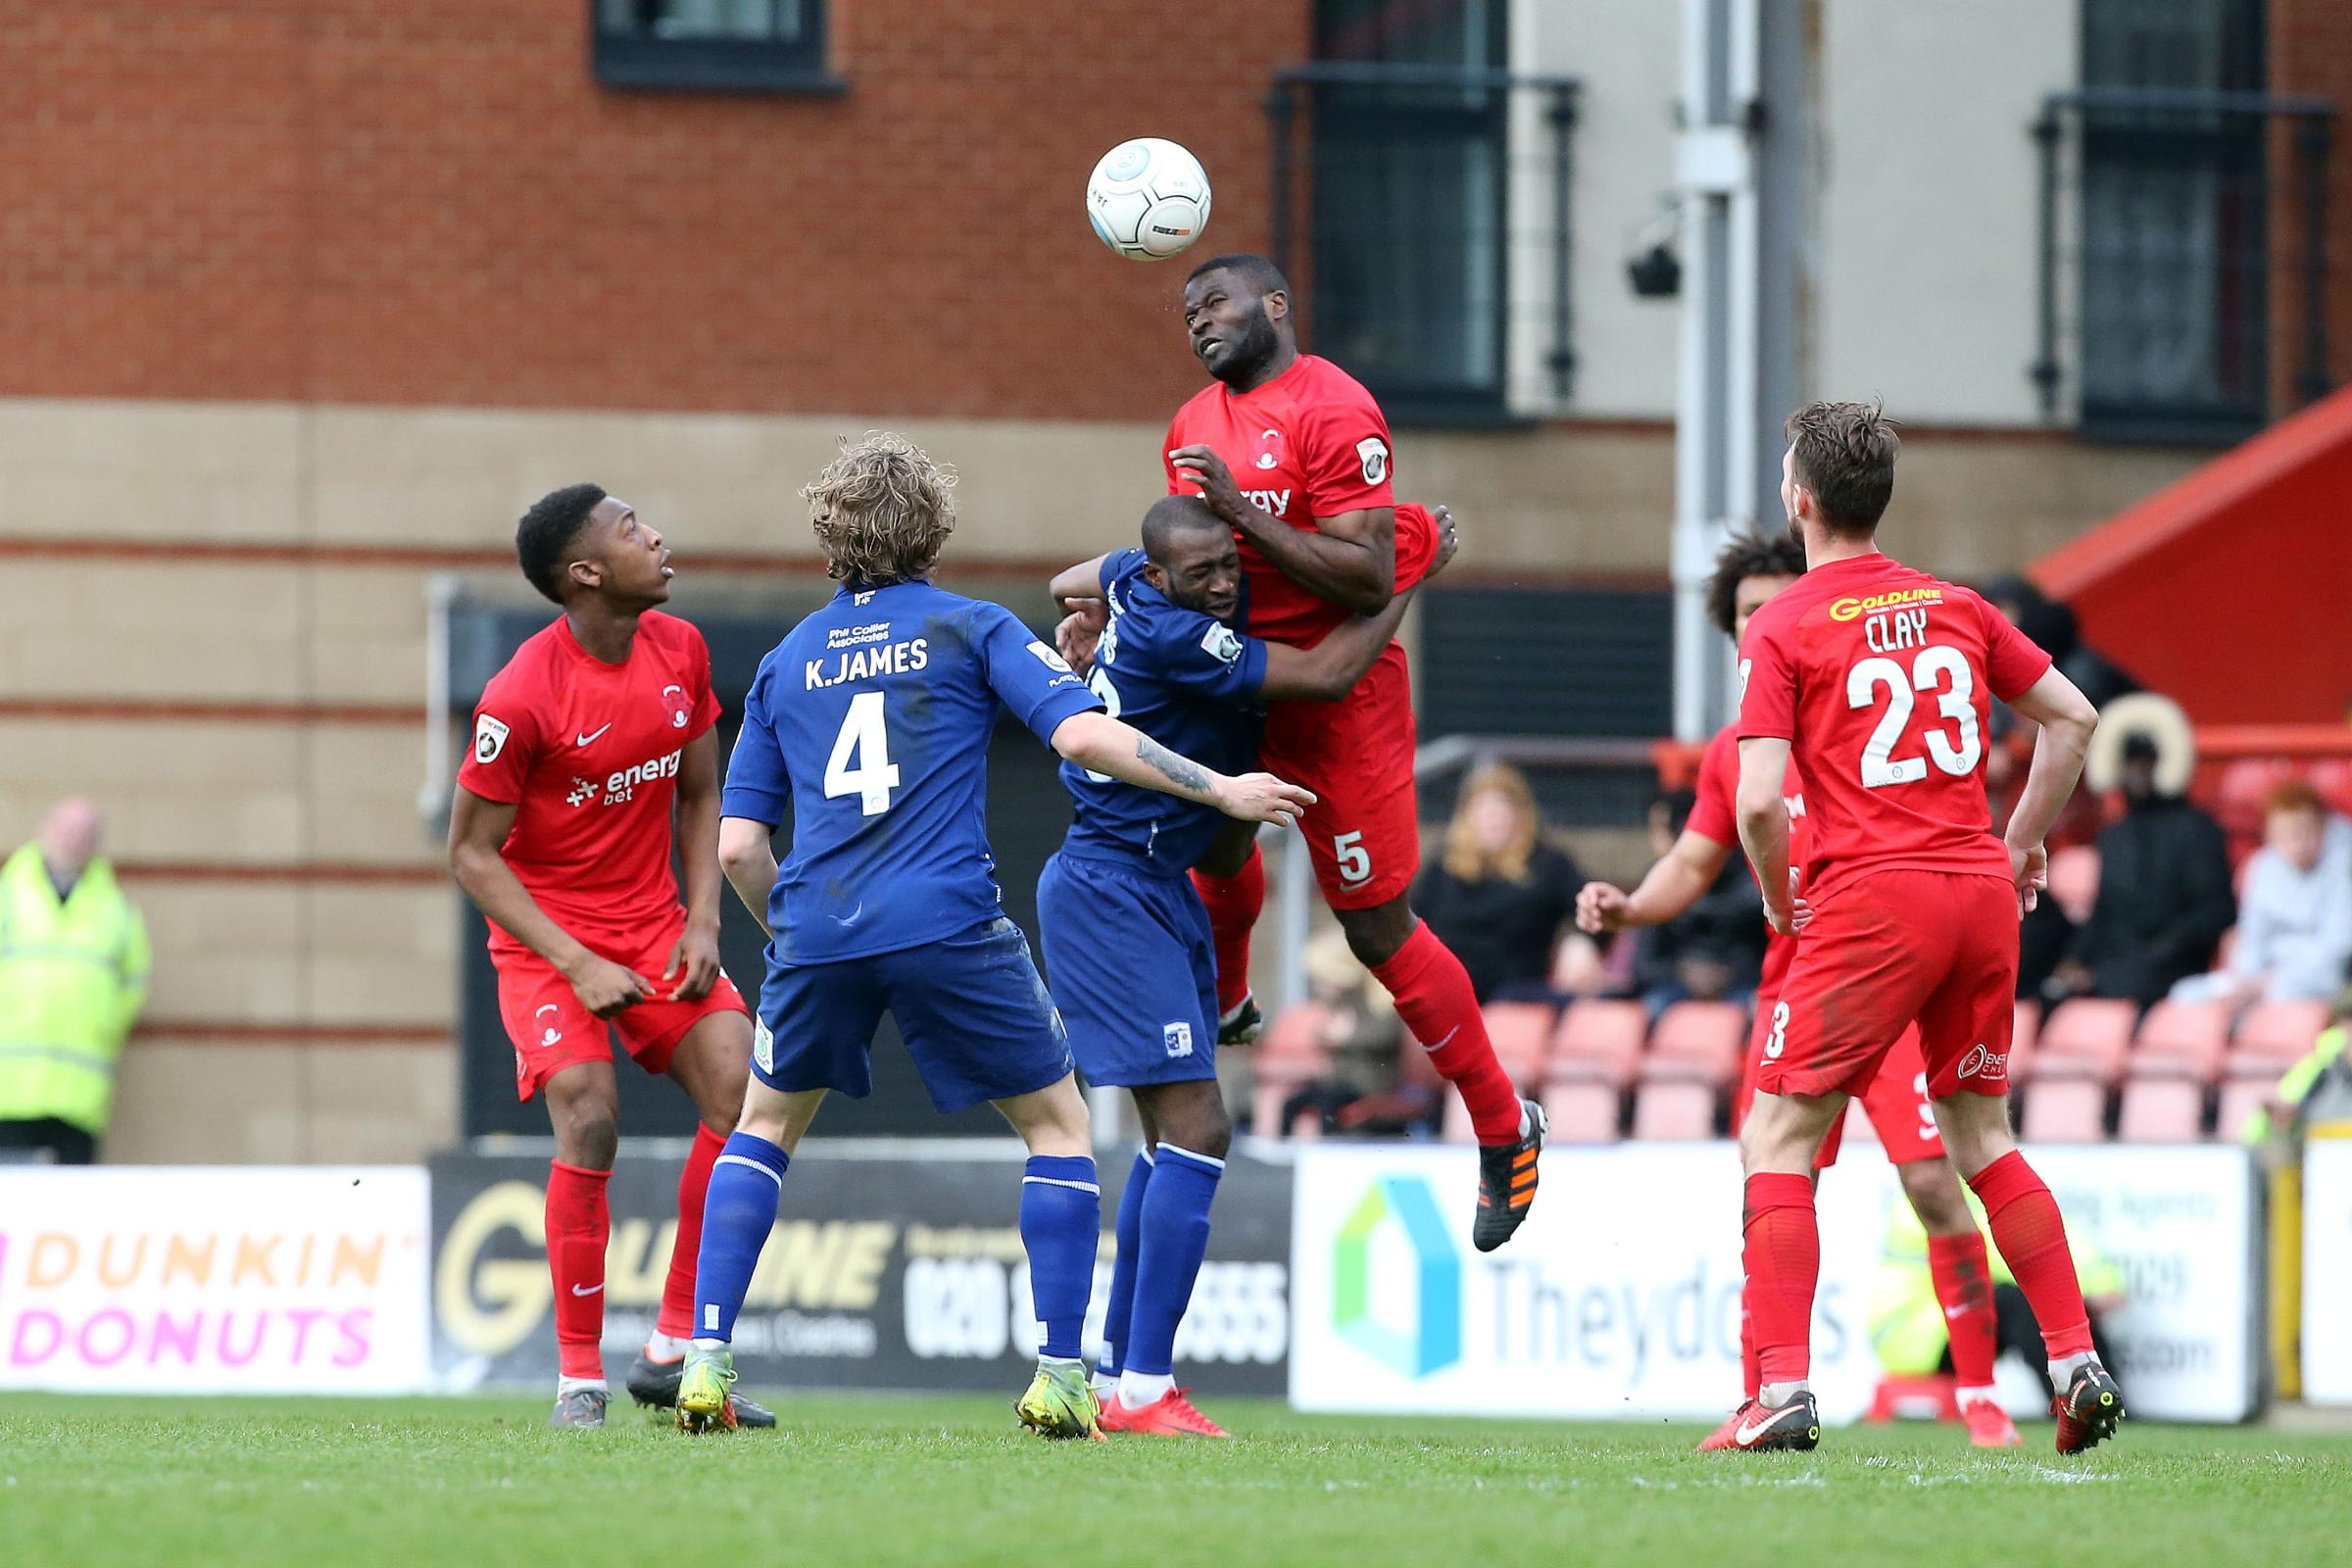 'We needed minutes': George Elokobi was pleased to get some more game time in the bank against Wrexham. Picture: Simon O'Connor